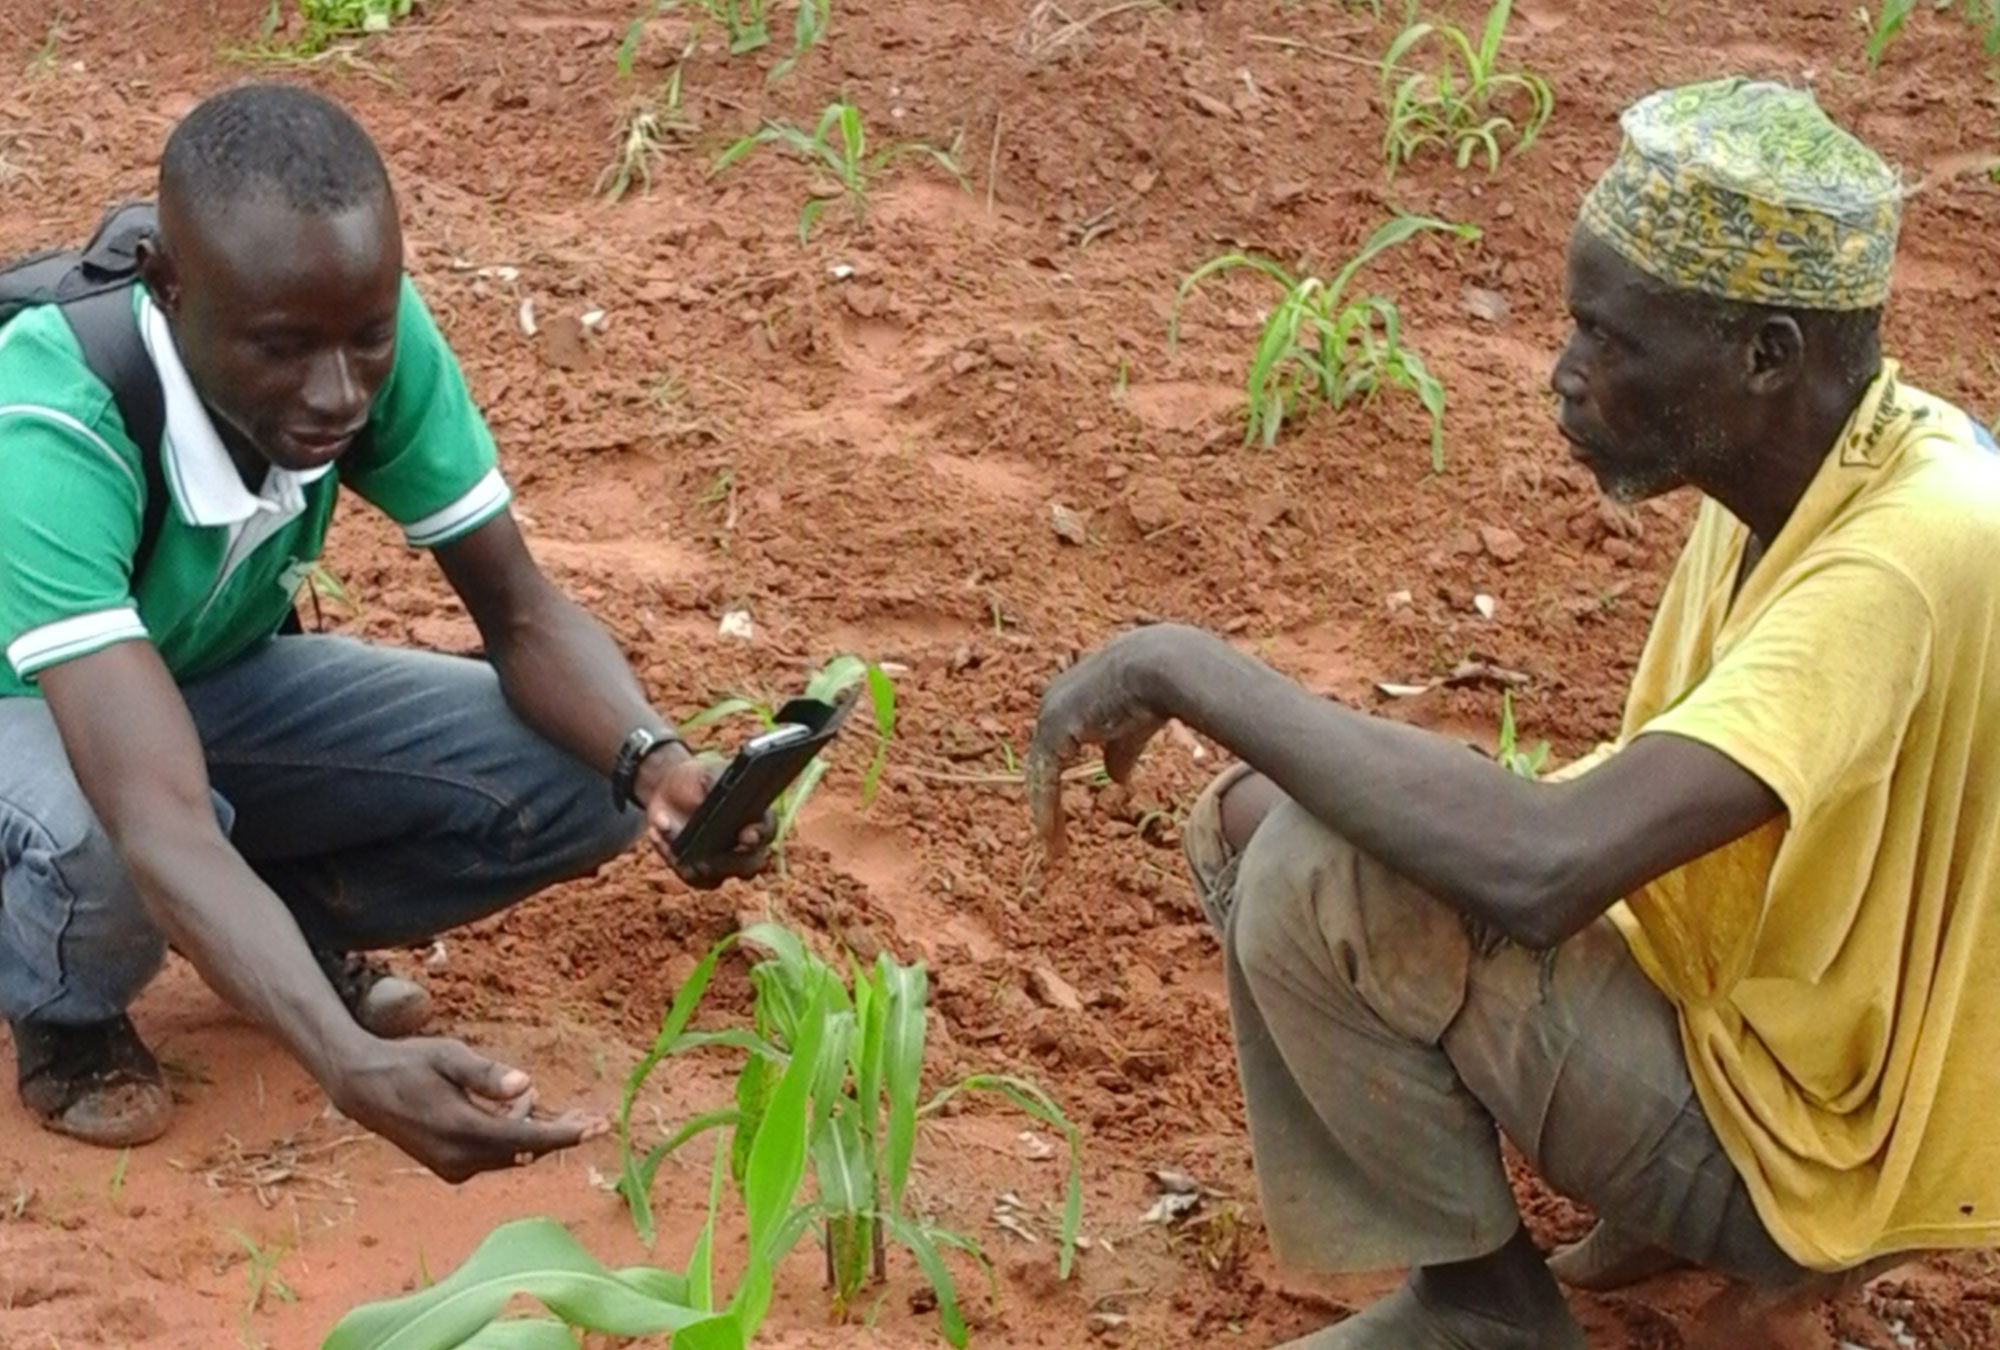 Two men kneel down to inspect crop